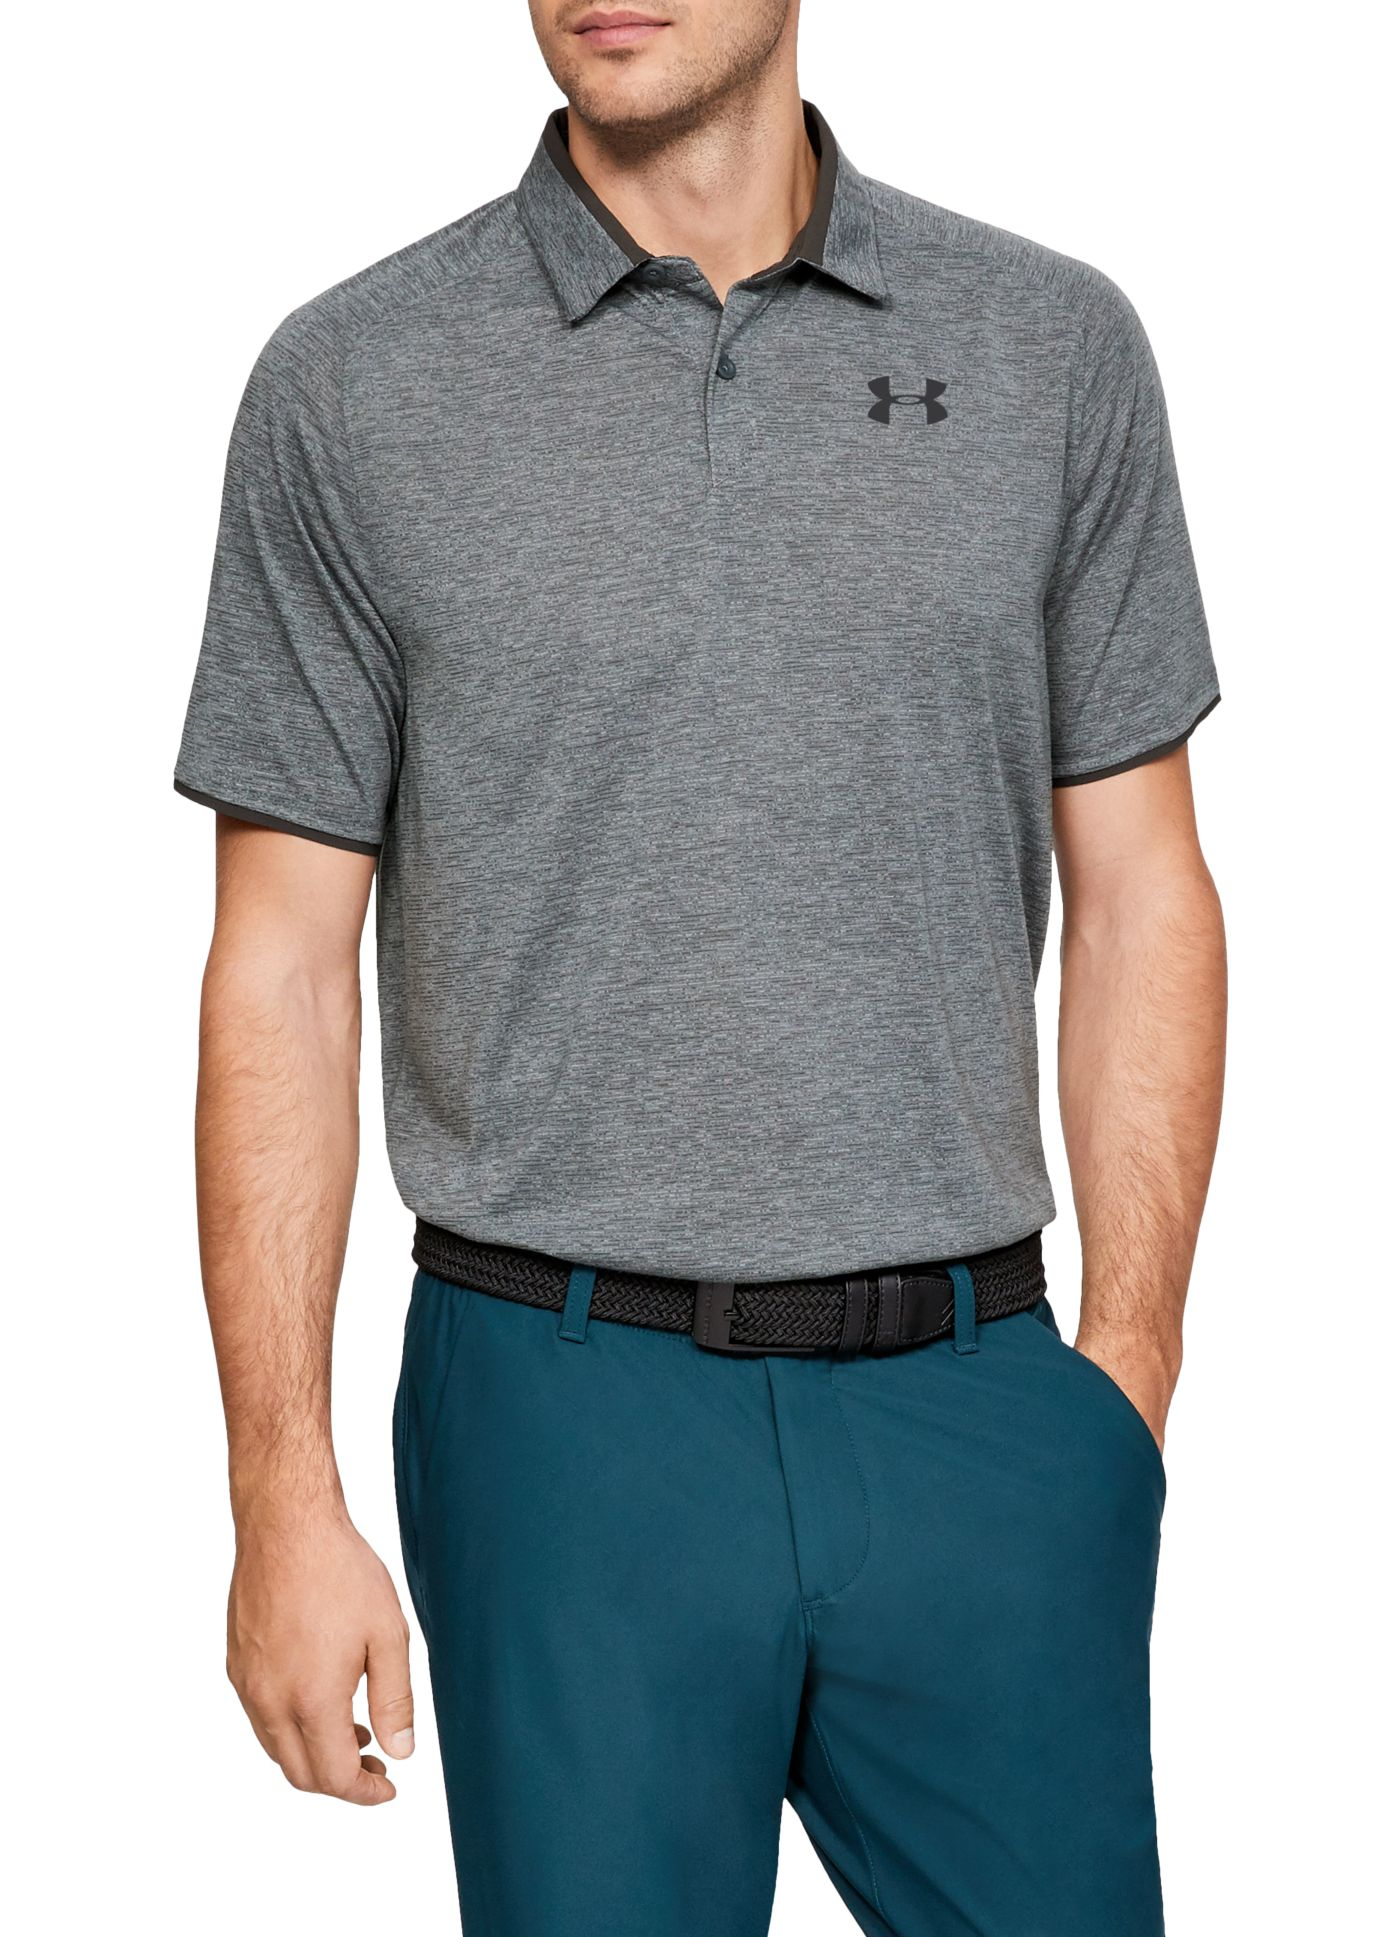 Under Armour Men's Vanish Golf Polo